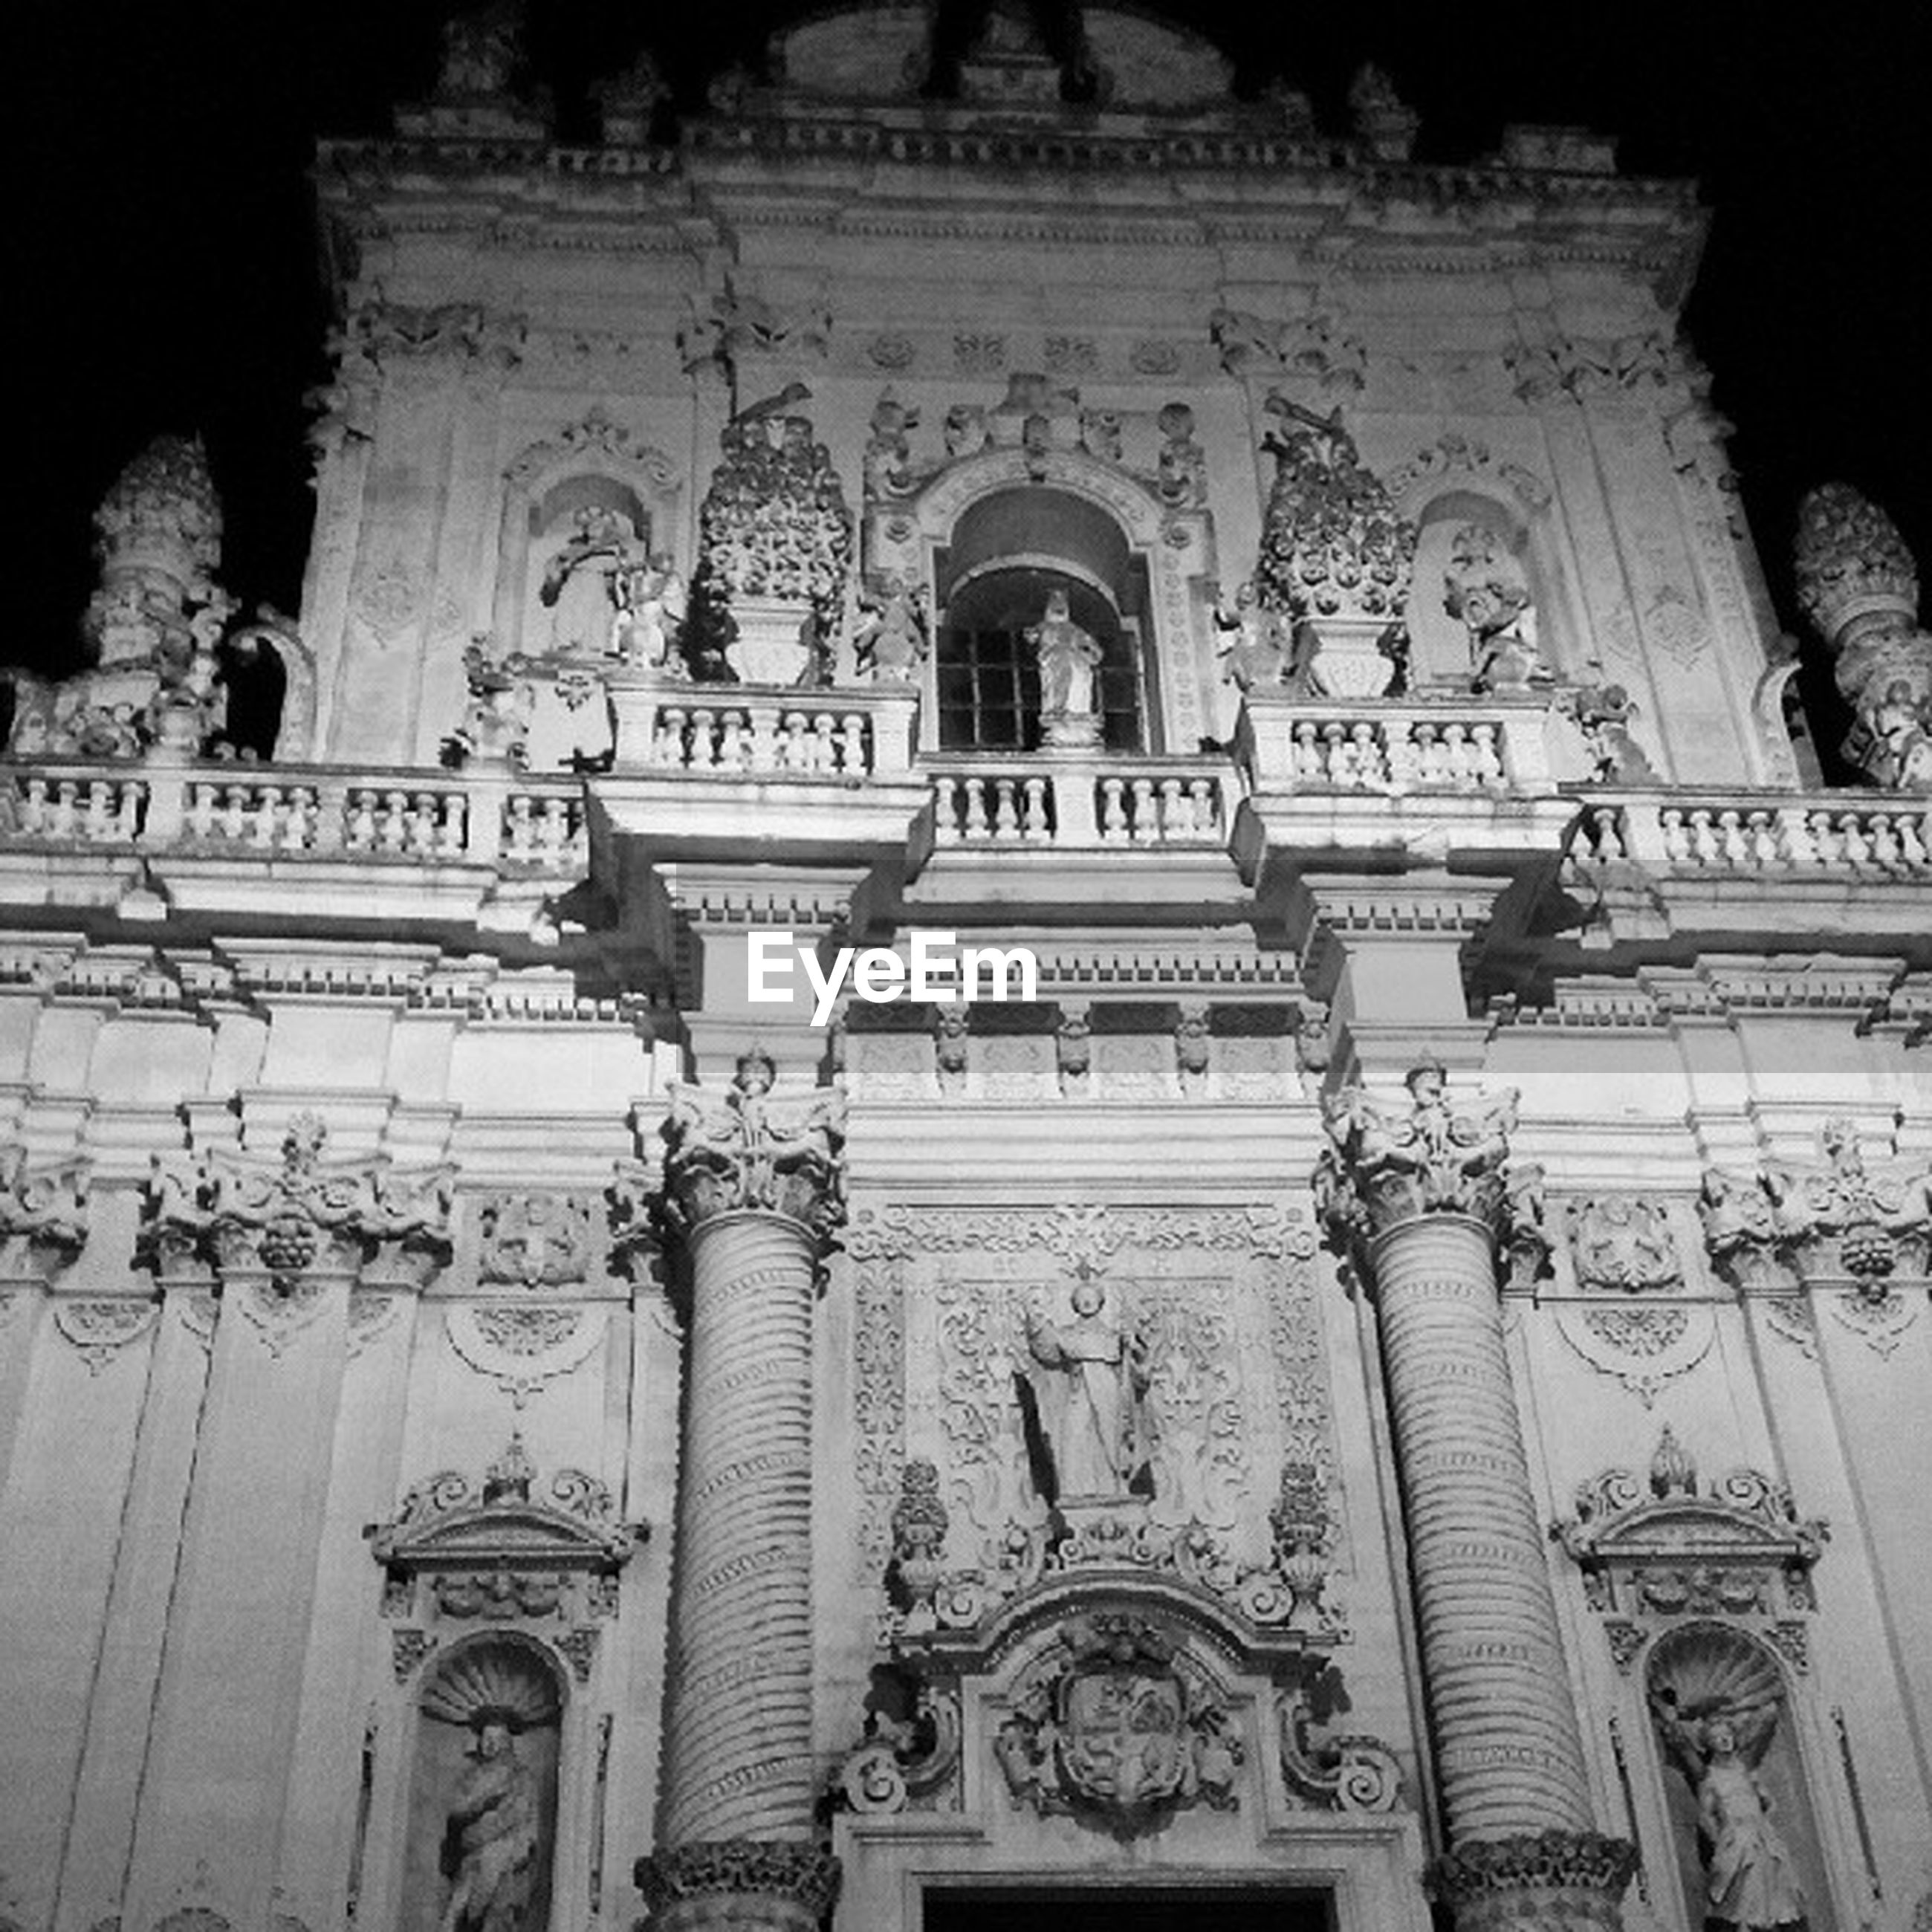 architecture, built structure, low angle view, art and craft, building exterior, art, statue, human representation, creativity, arch, carving - craft product, sculpture, religion, place of worship, history, ornate, spirituality, church